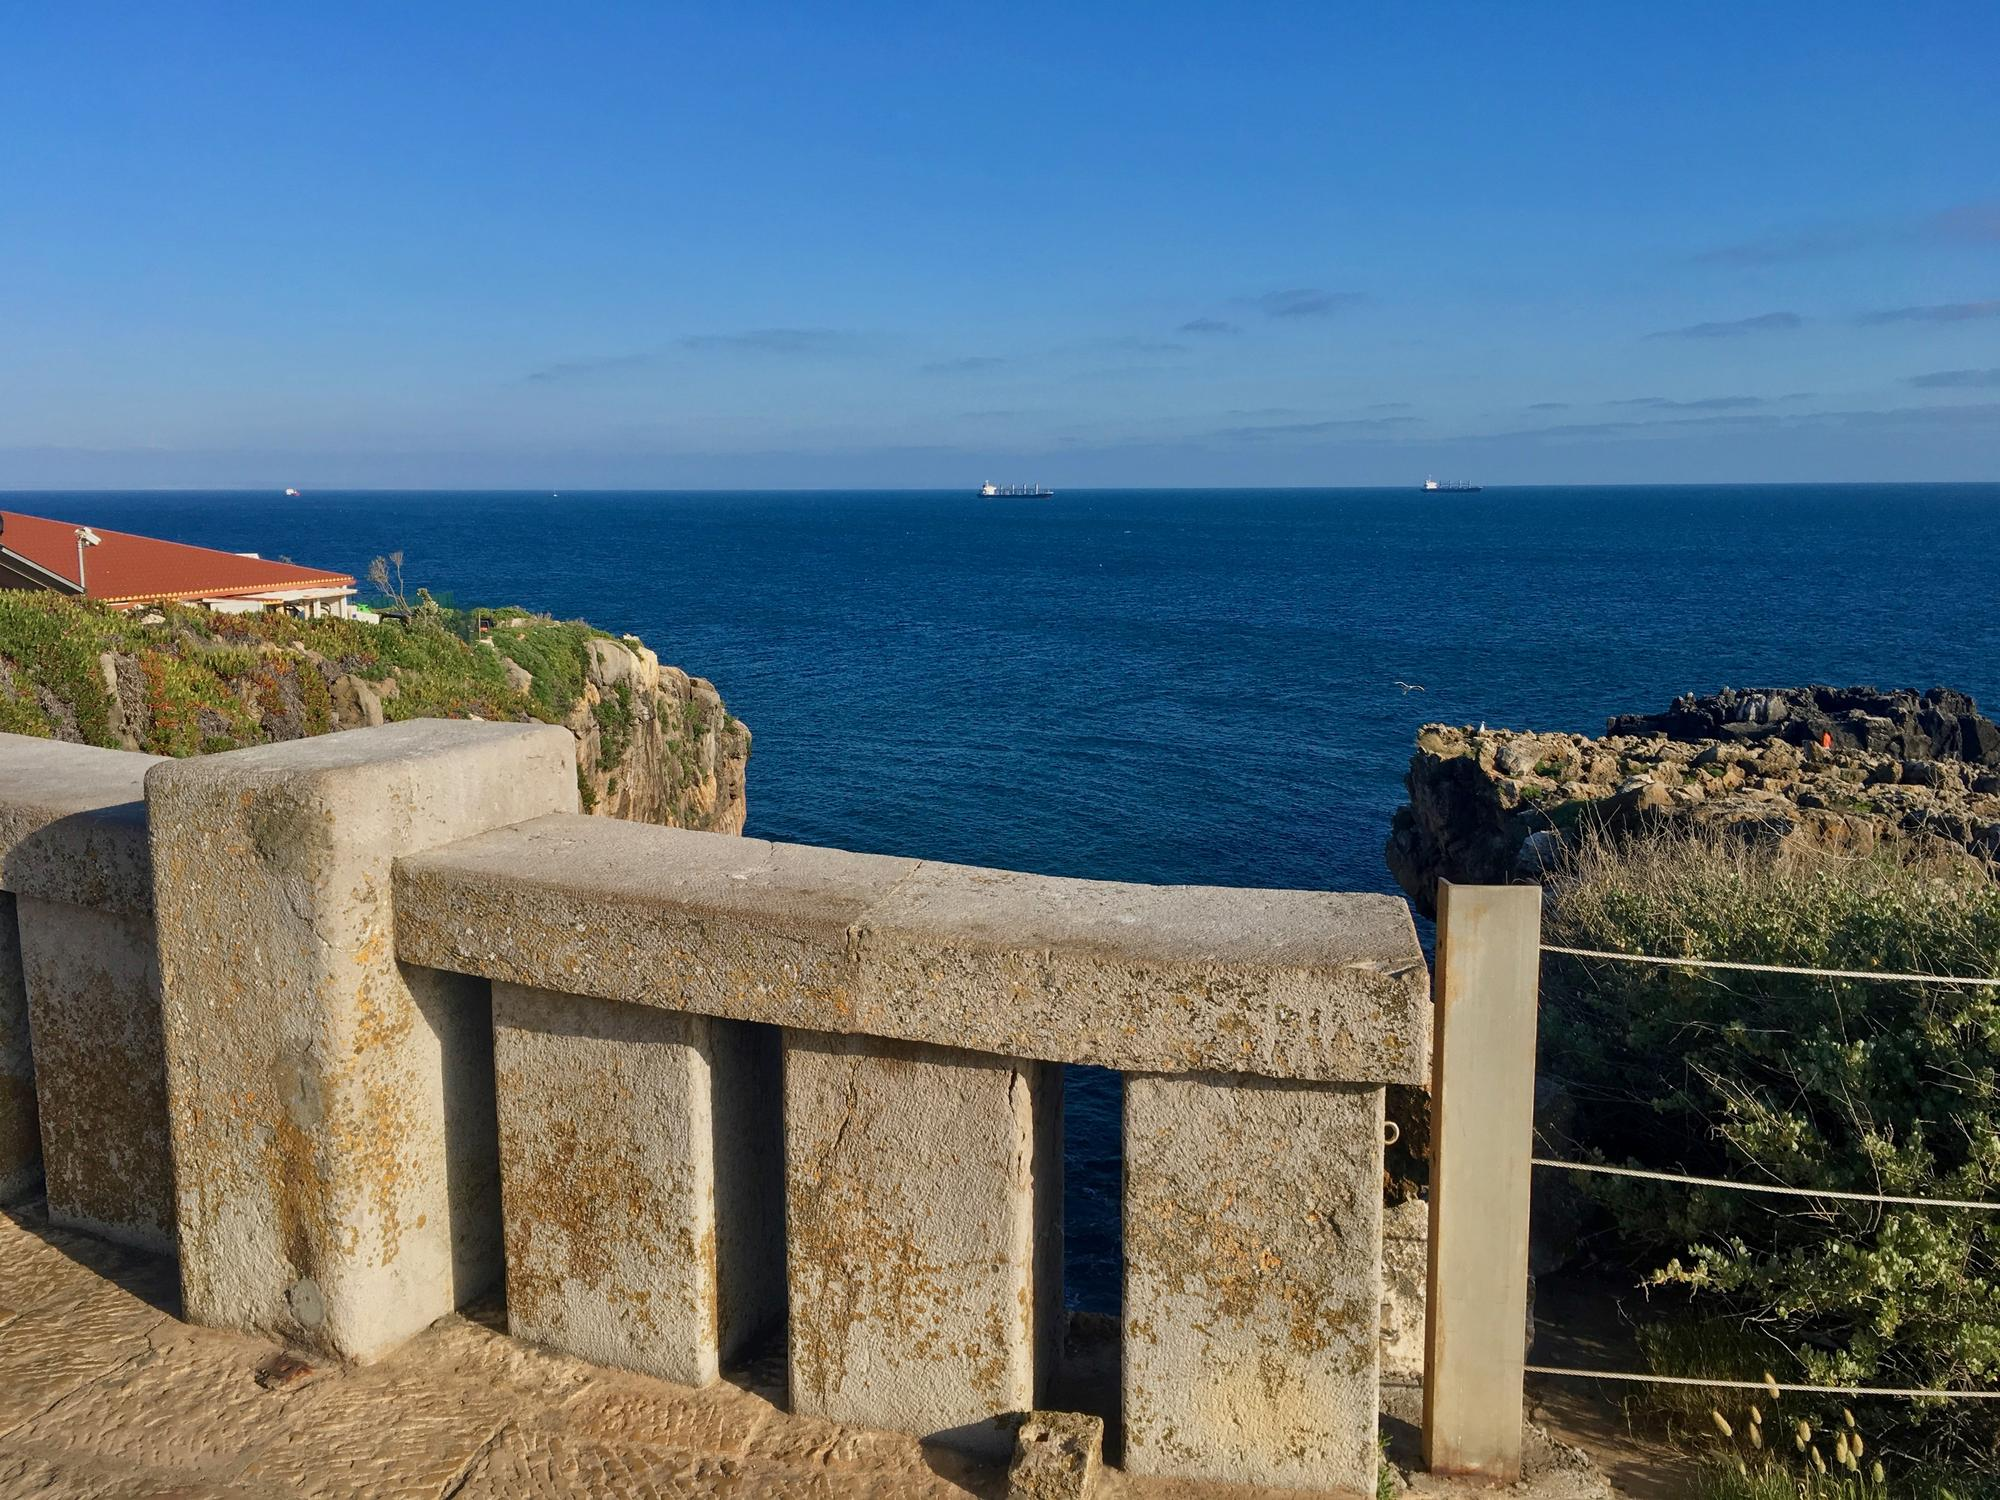 🇵🇹 Cascais, Portugal, may 2019.